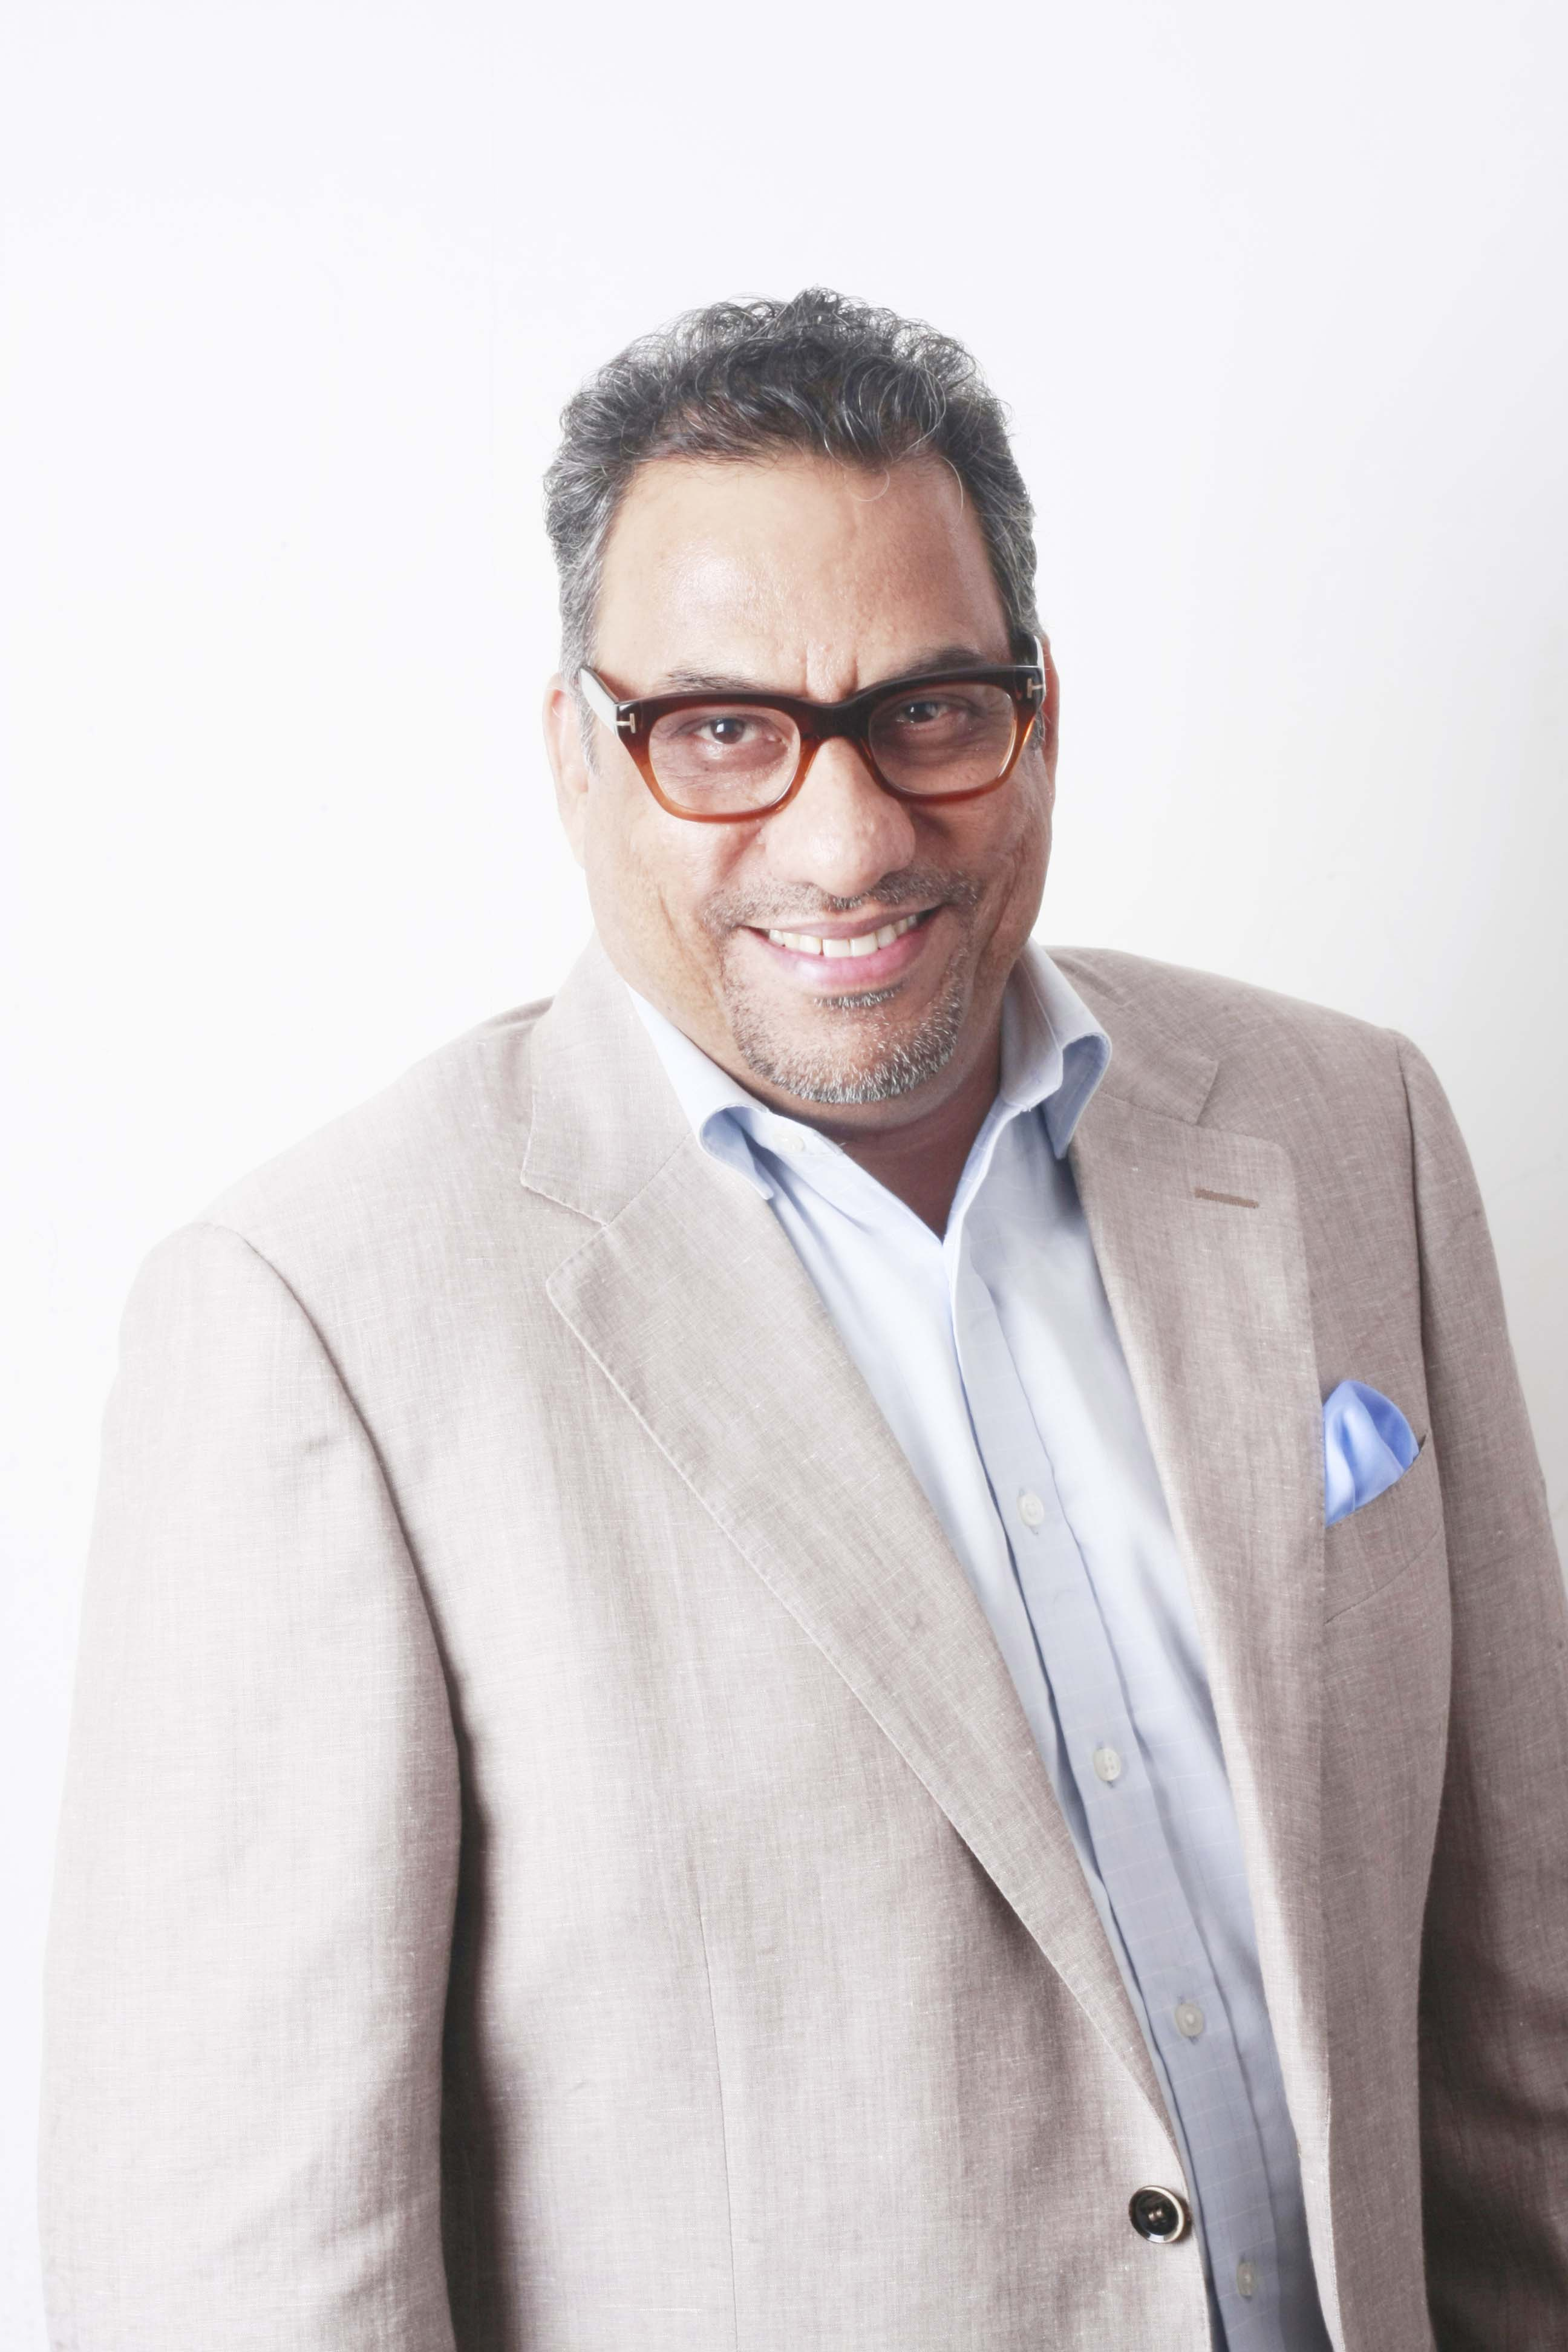 Mr. Jayont R. Sharma, Founder, Chairman & CEO, Milestone Interactive Private Limited